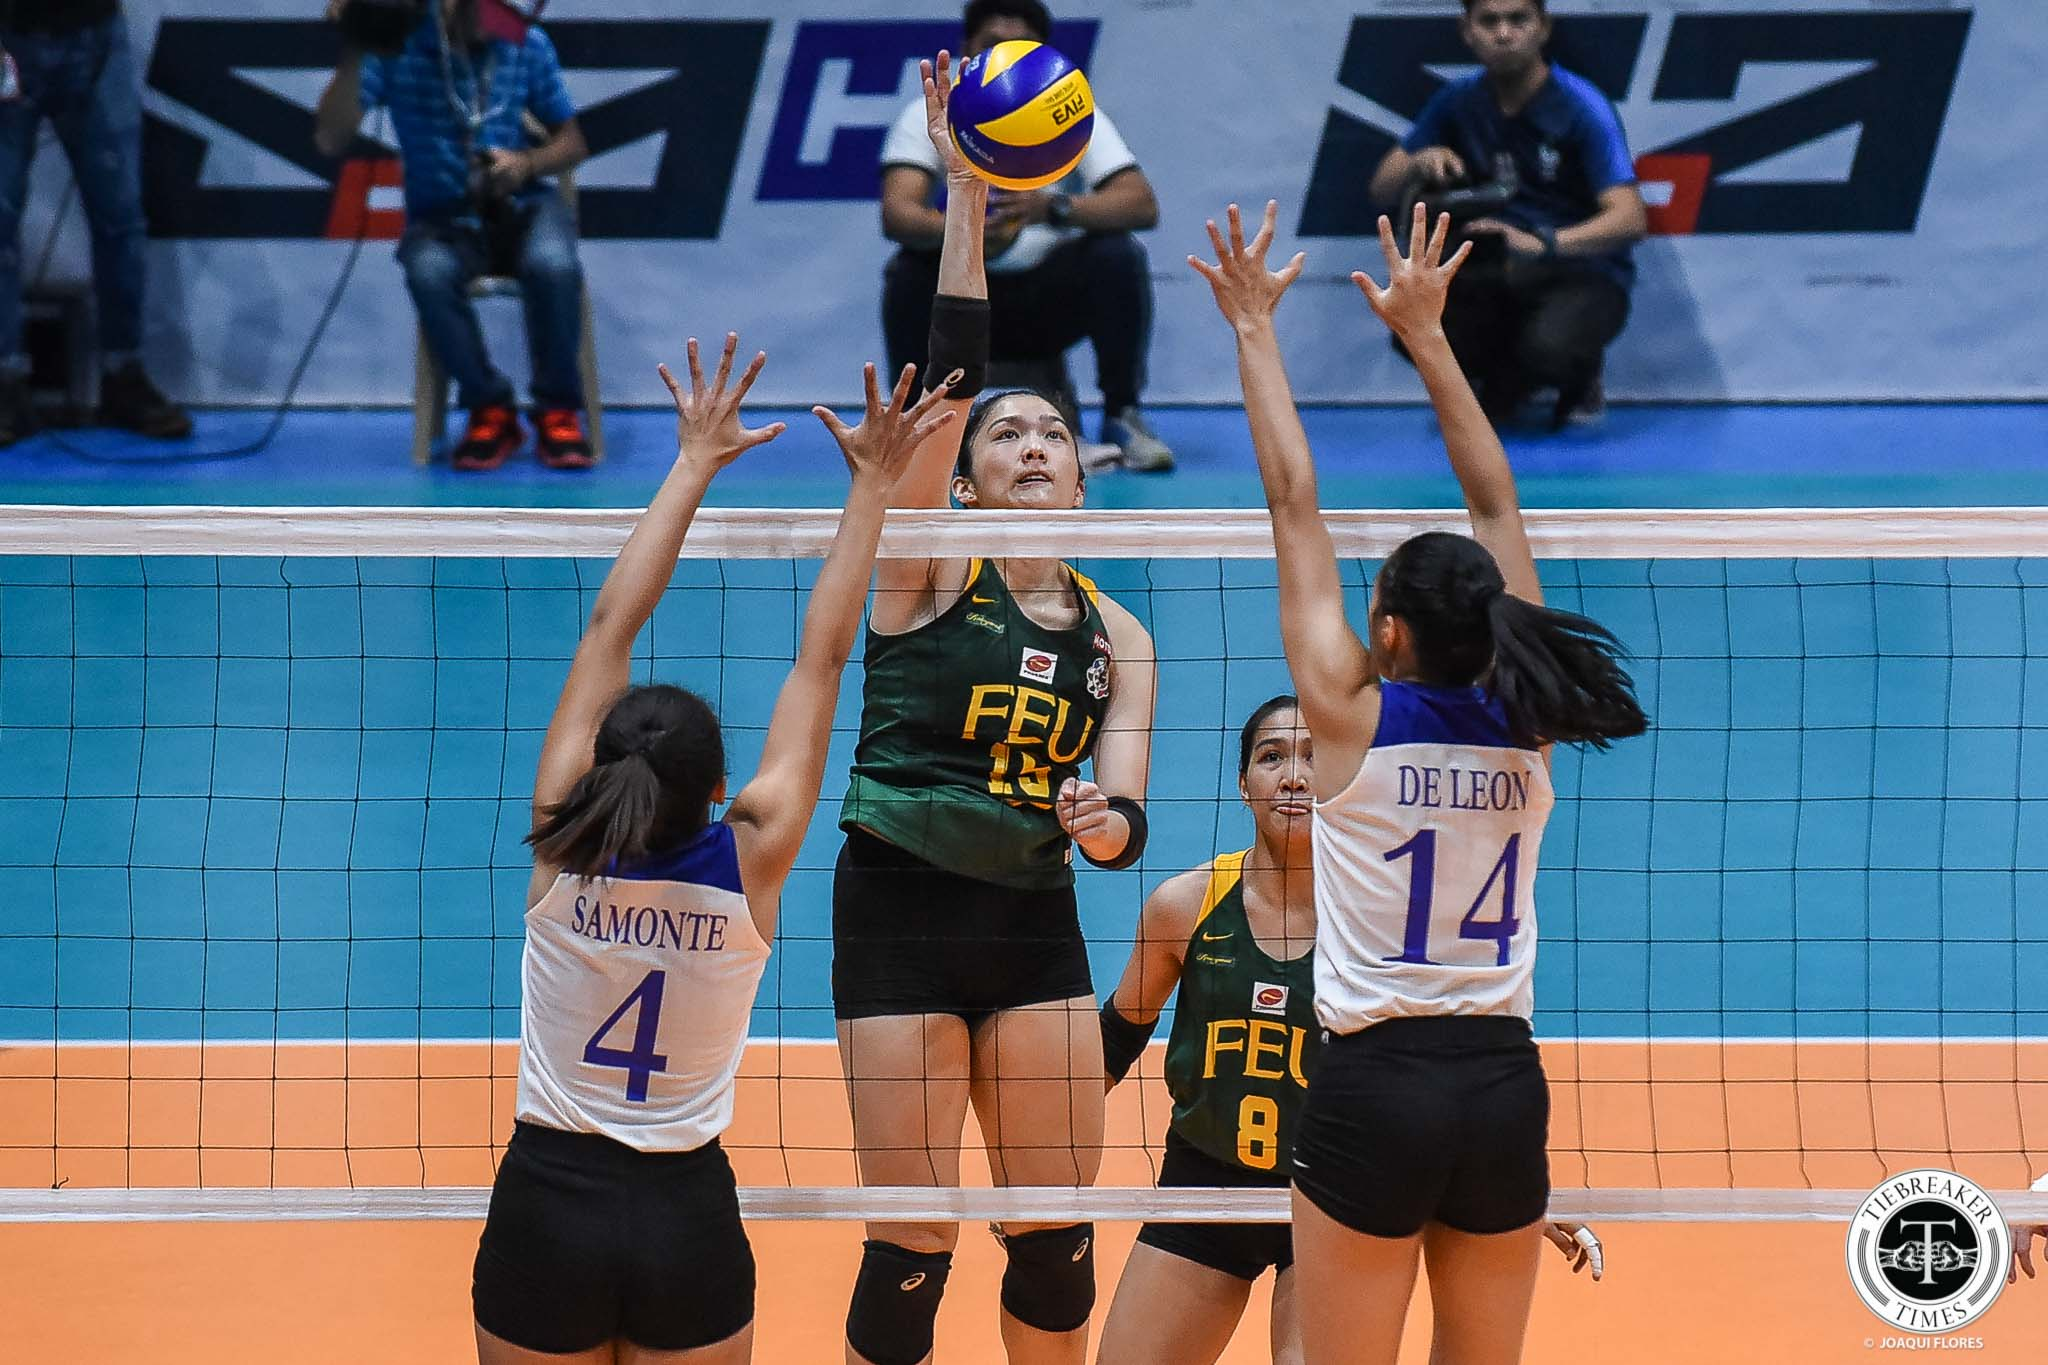 Tiebreaker Times Jerrili Malabanan glad to have finished career proving doubters wrong FEU News UAAP Volleyball  UAAP Season 81 Women's Volleyball UAAP Season 81 Jerrili Malabanan FEU Women's Volleyball